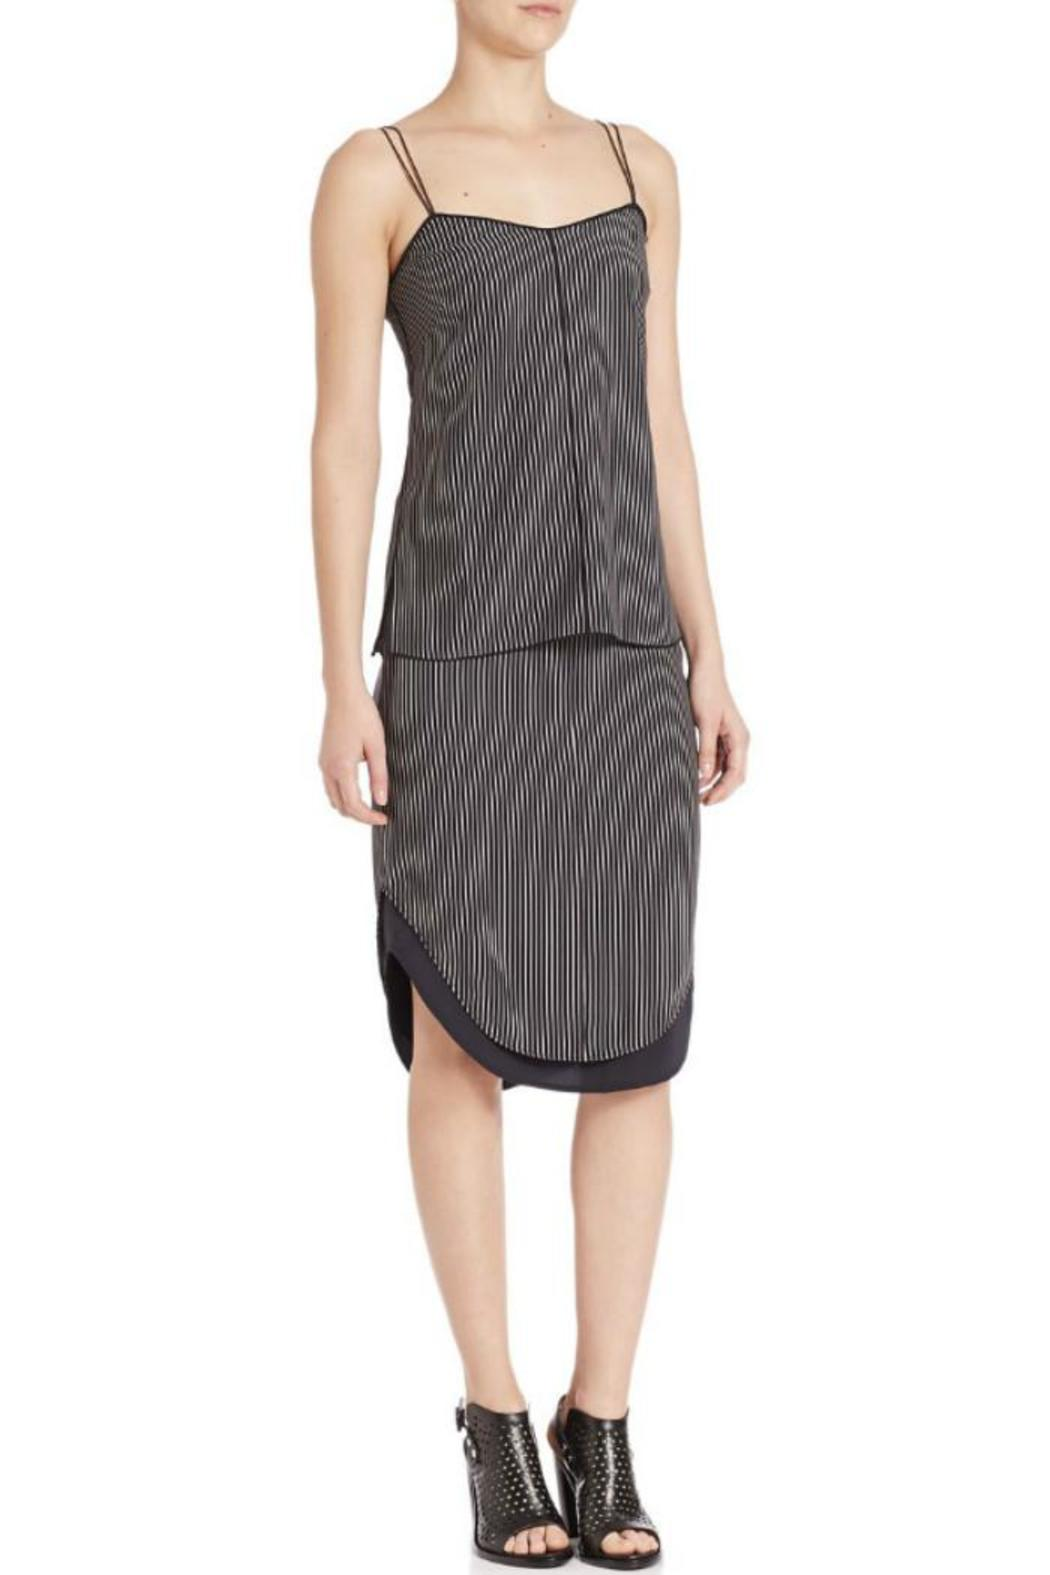 Rag & Bone Patti Silk Pinstripe Camisole - Side Cropped Image